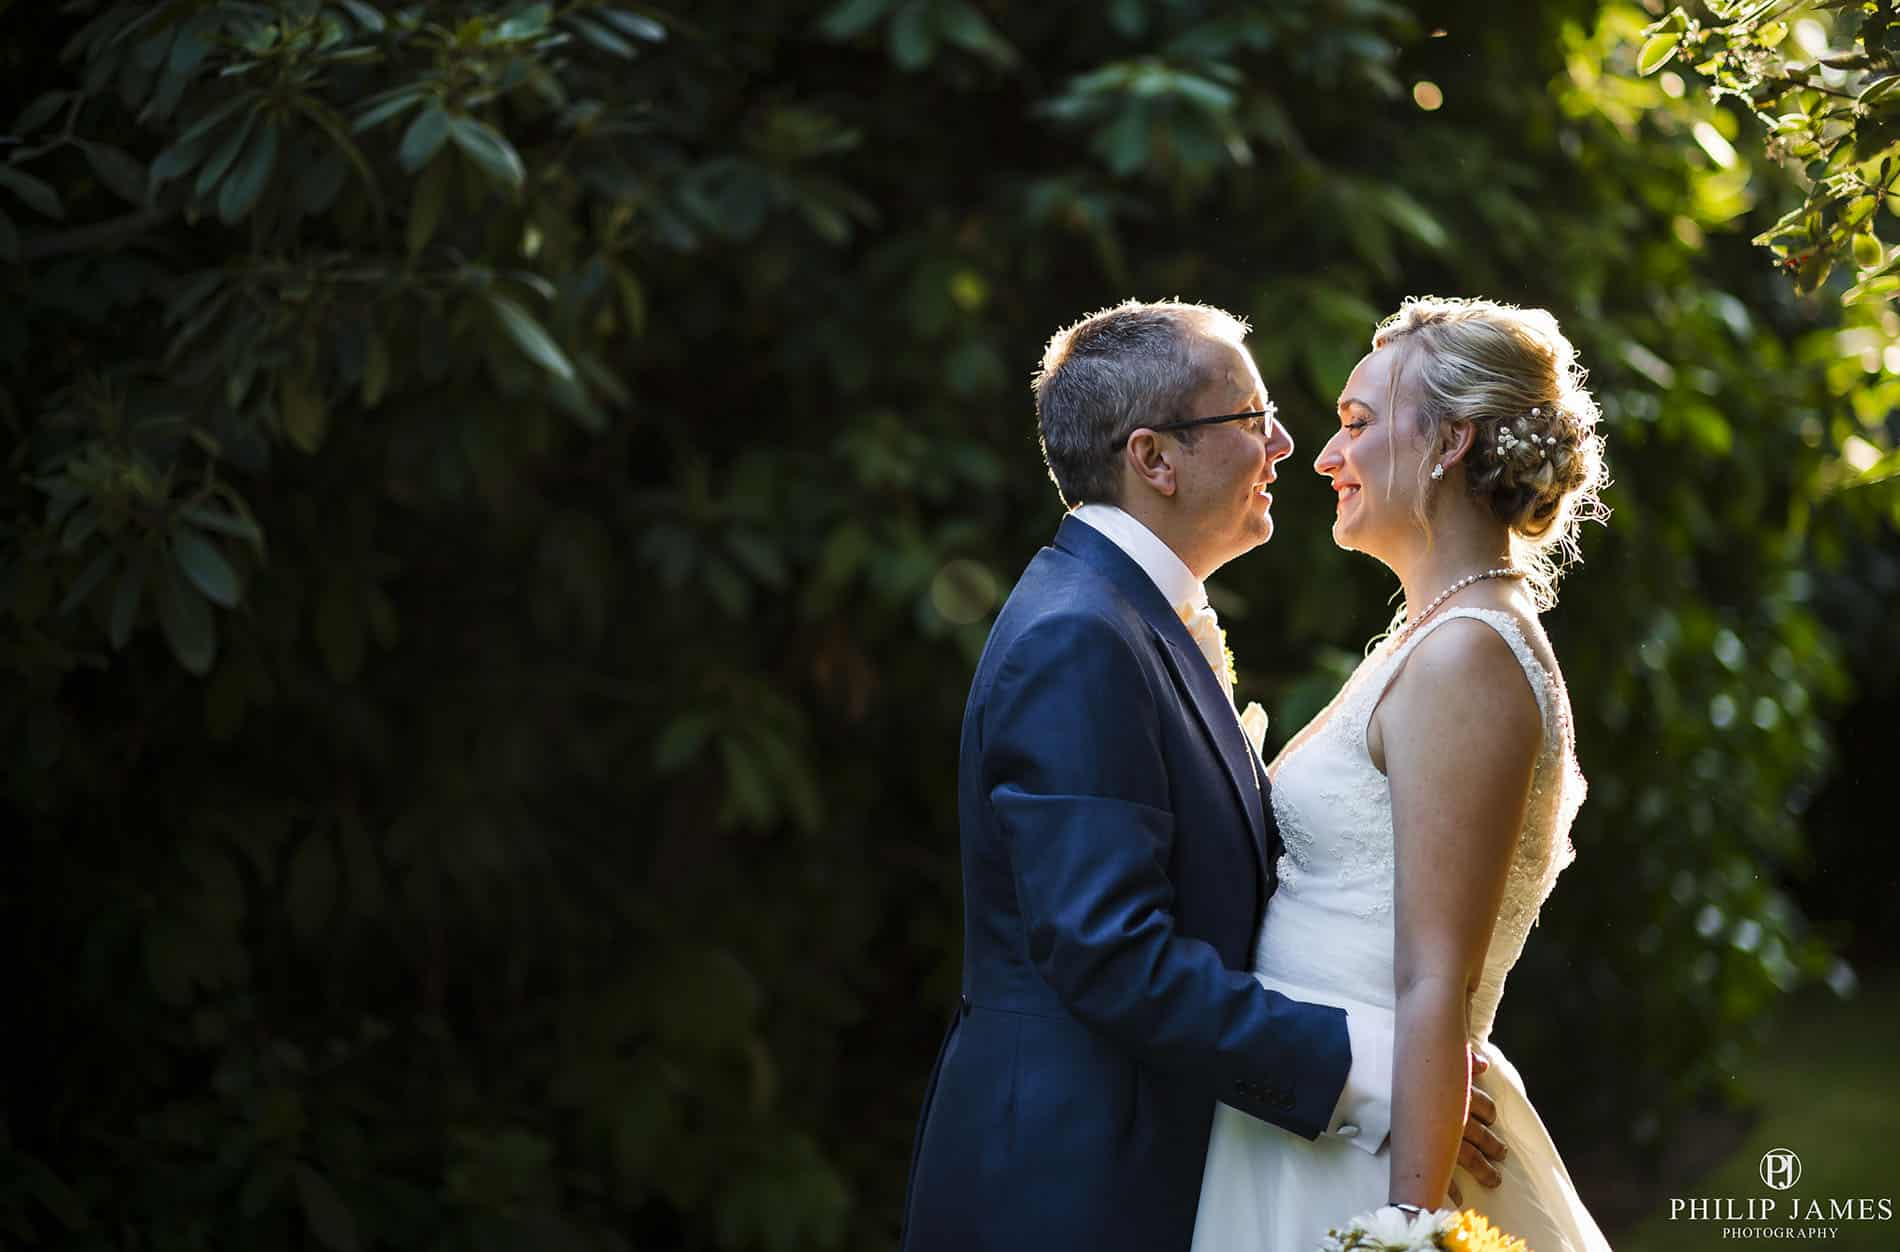 Pendrell Hall Wedding Photographer - Philip James covers Birmingham, The West Midlands, Solihull and Destination weddings. Wedding photography Birmingham is my passion